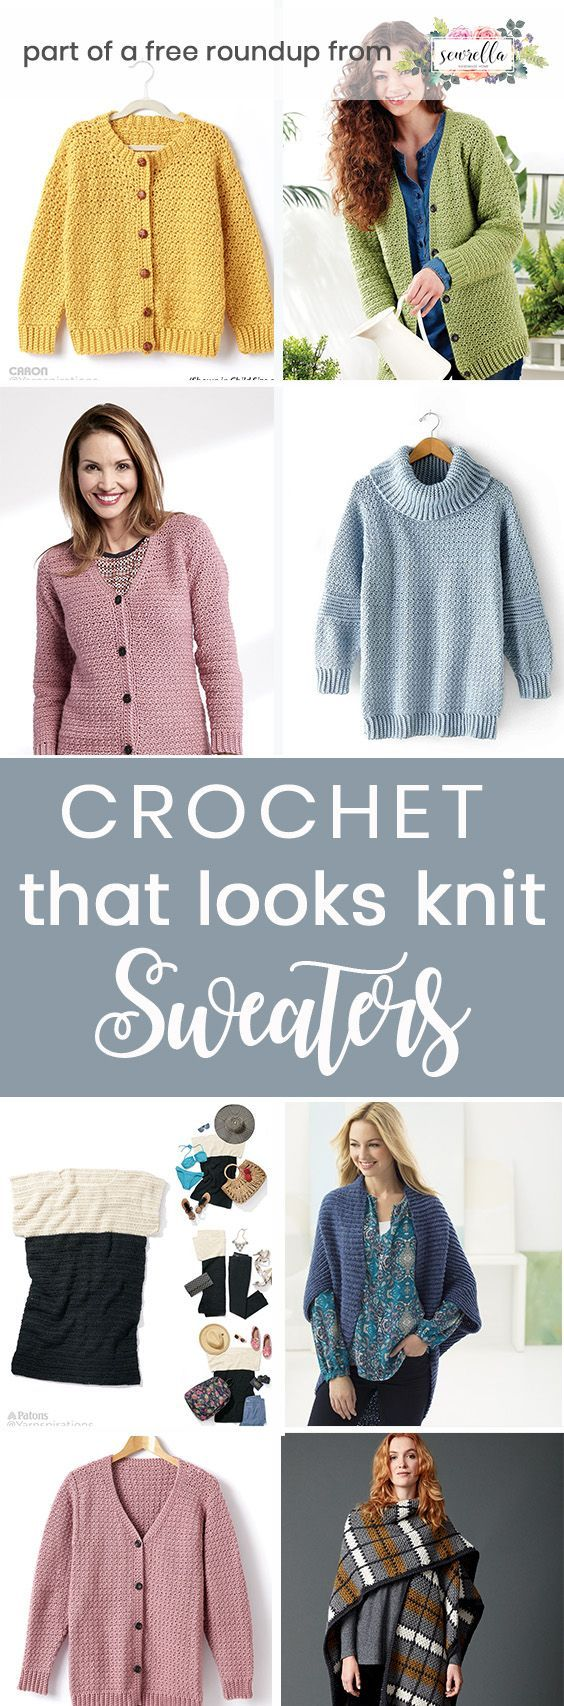 Crochet these easy free sweater patterns that look knit from my crochet that looks knit free pattern roundup!